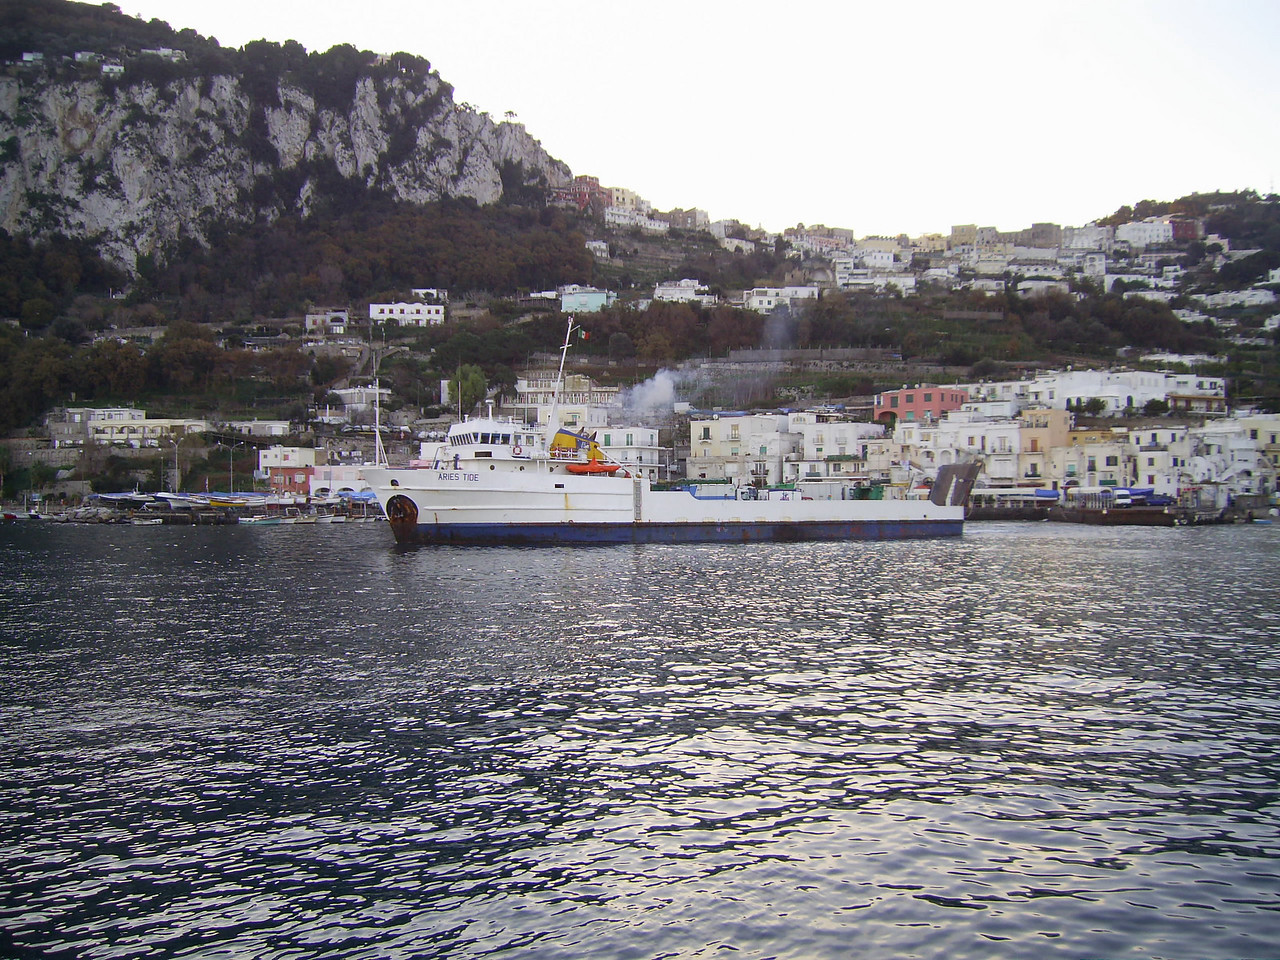 M/S ARIES TIDE departing from Capri. An old offshore supply ship used for garbage, oil and special transports between Napoli and Capri island.